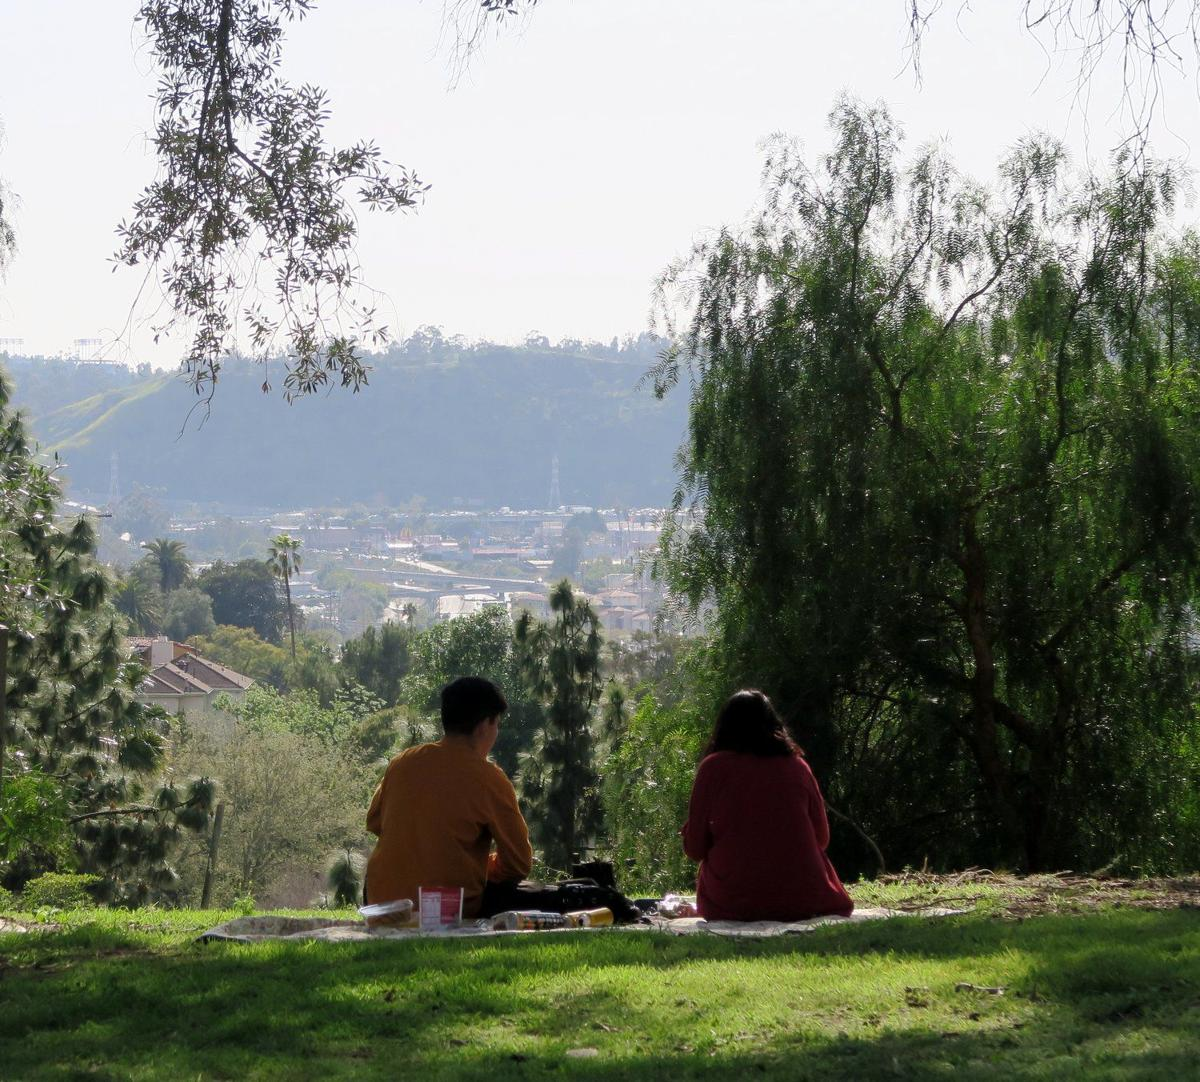 Picnic with a view from Debs Park